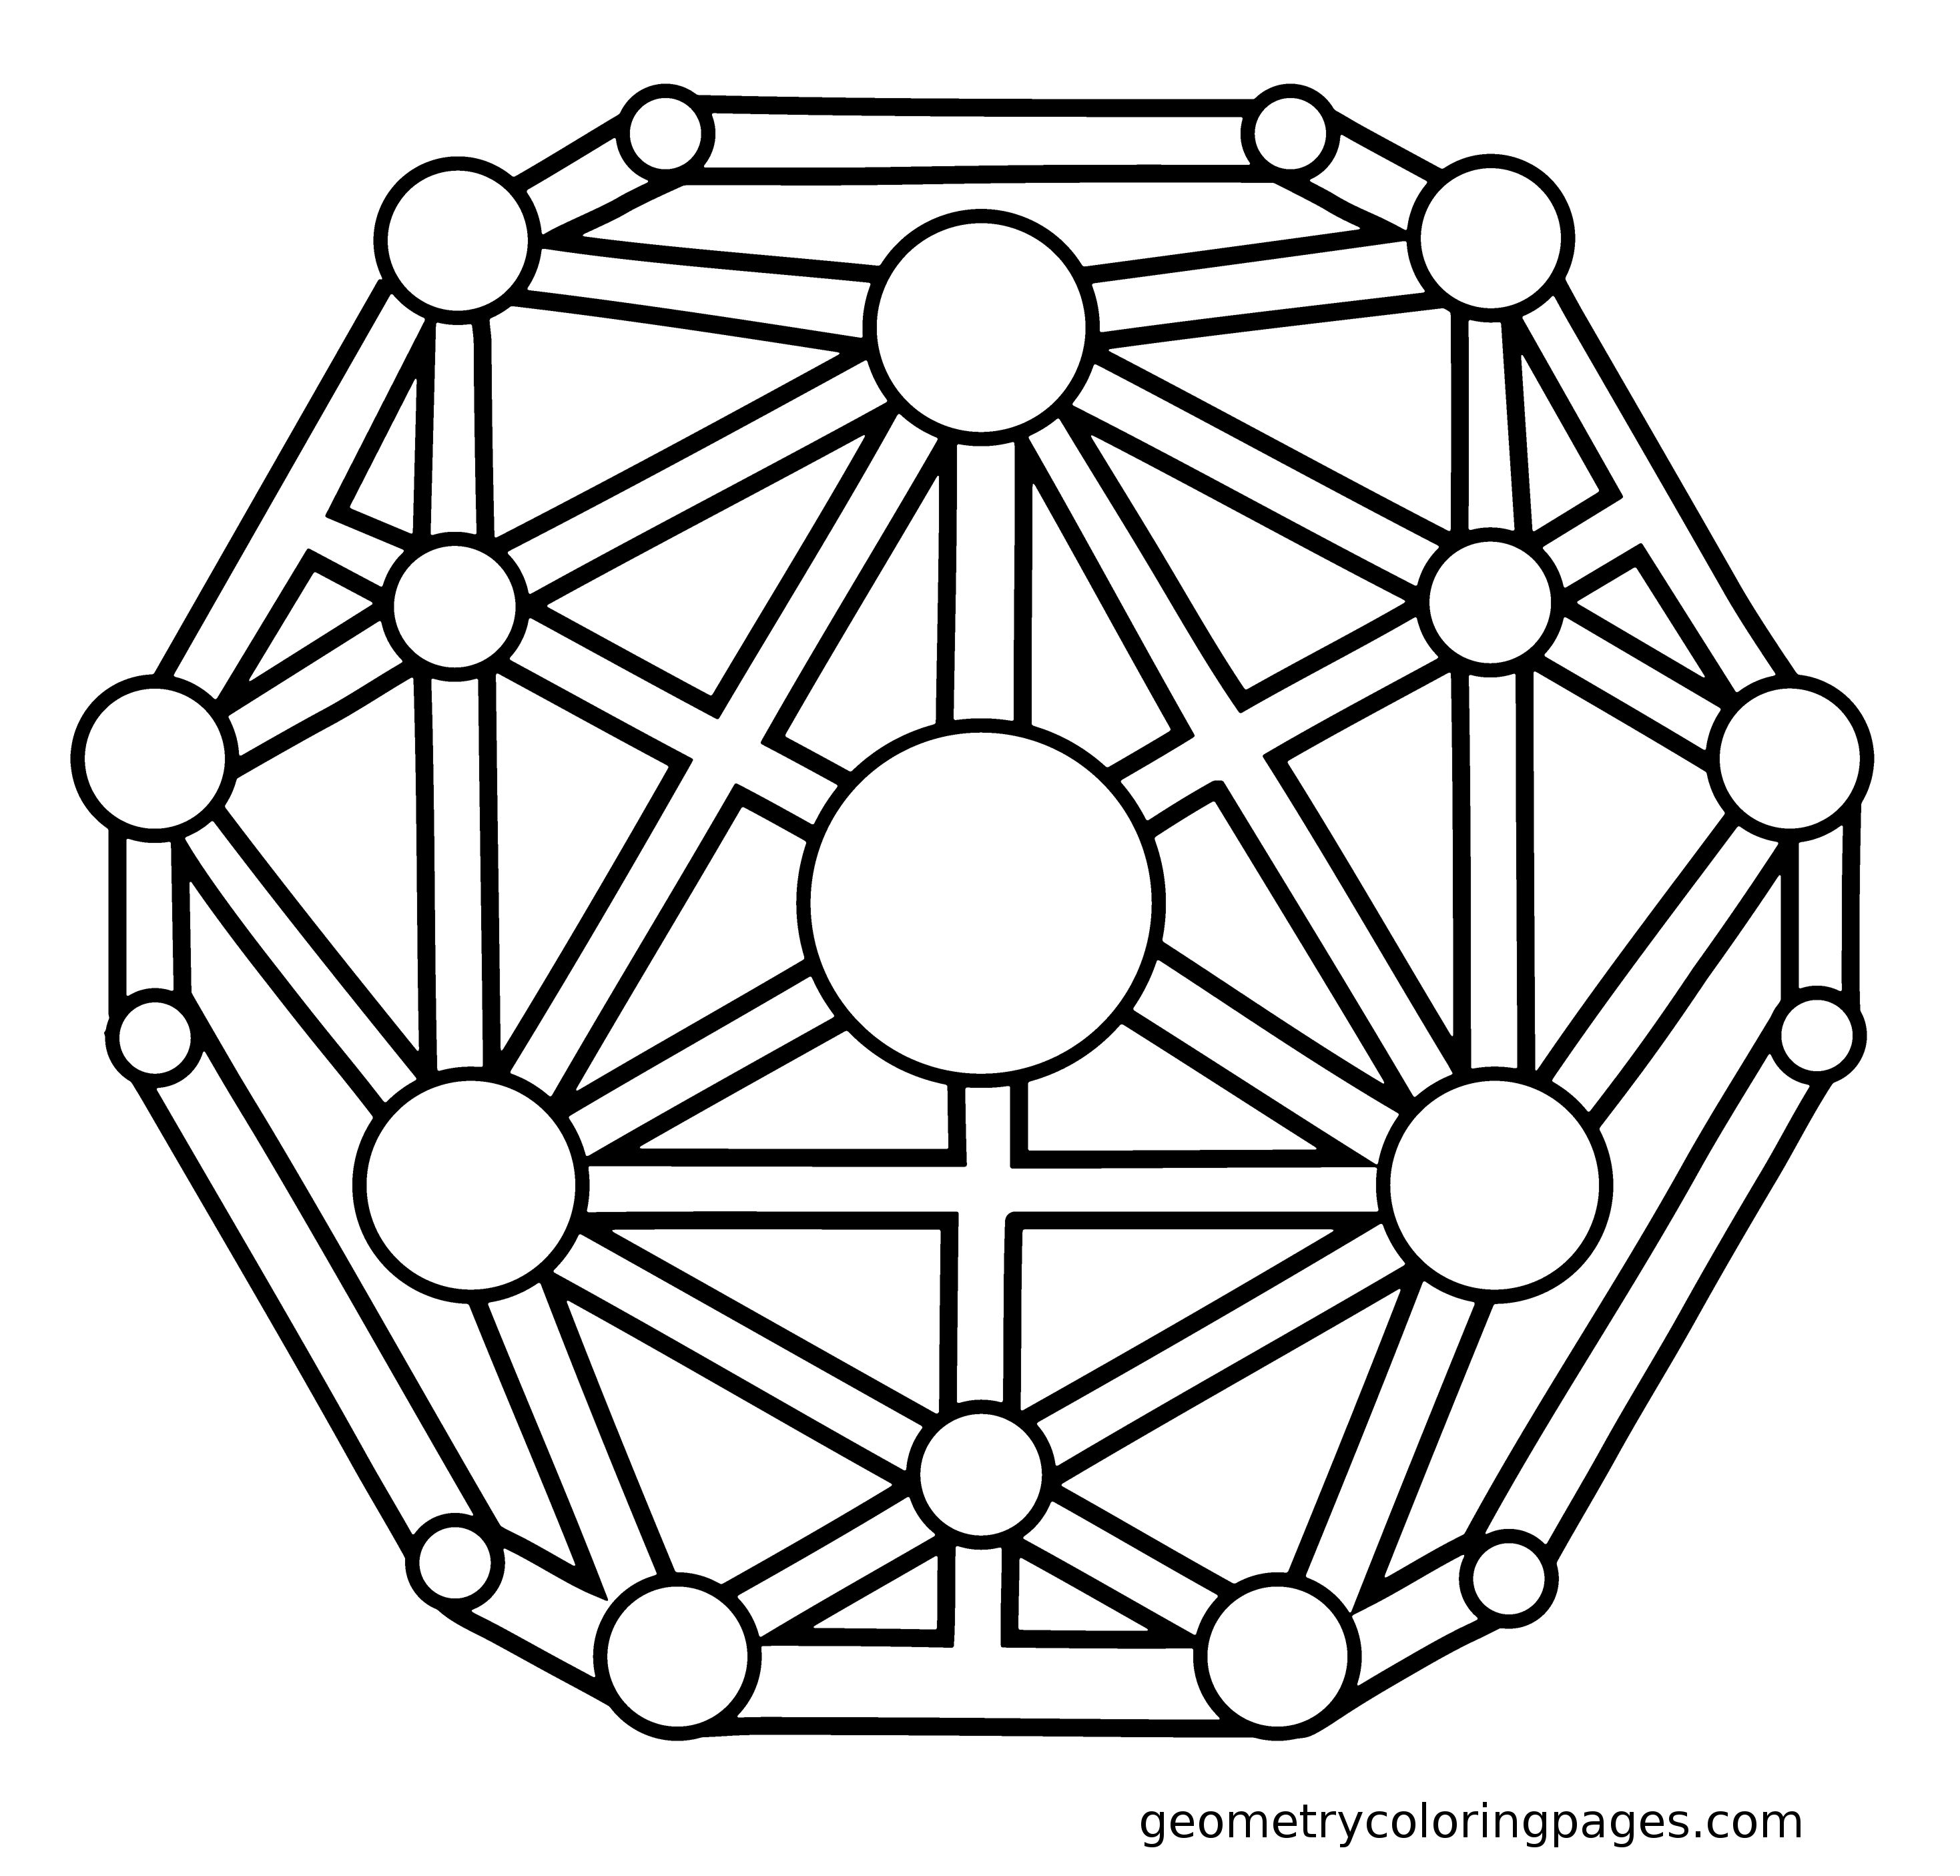 Sacred Geometry Coloring Page, Dodecahedron from